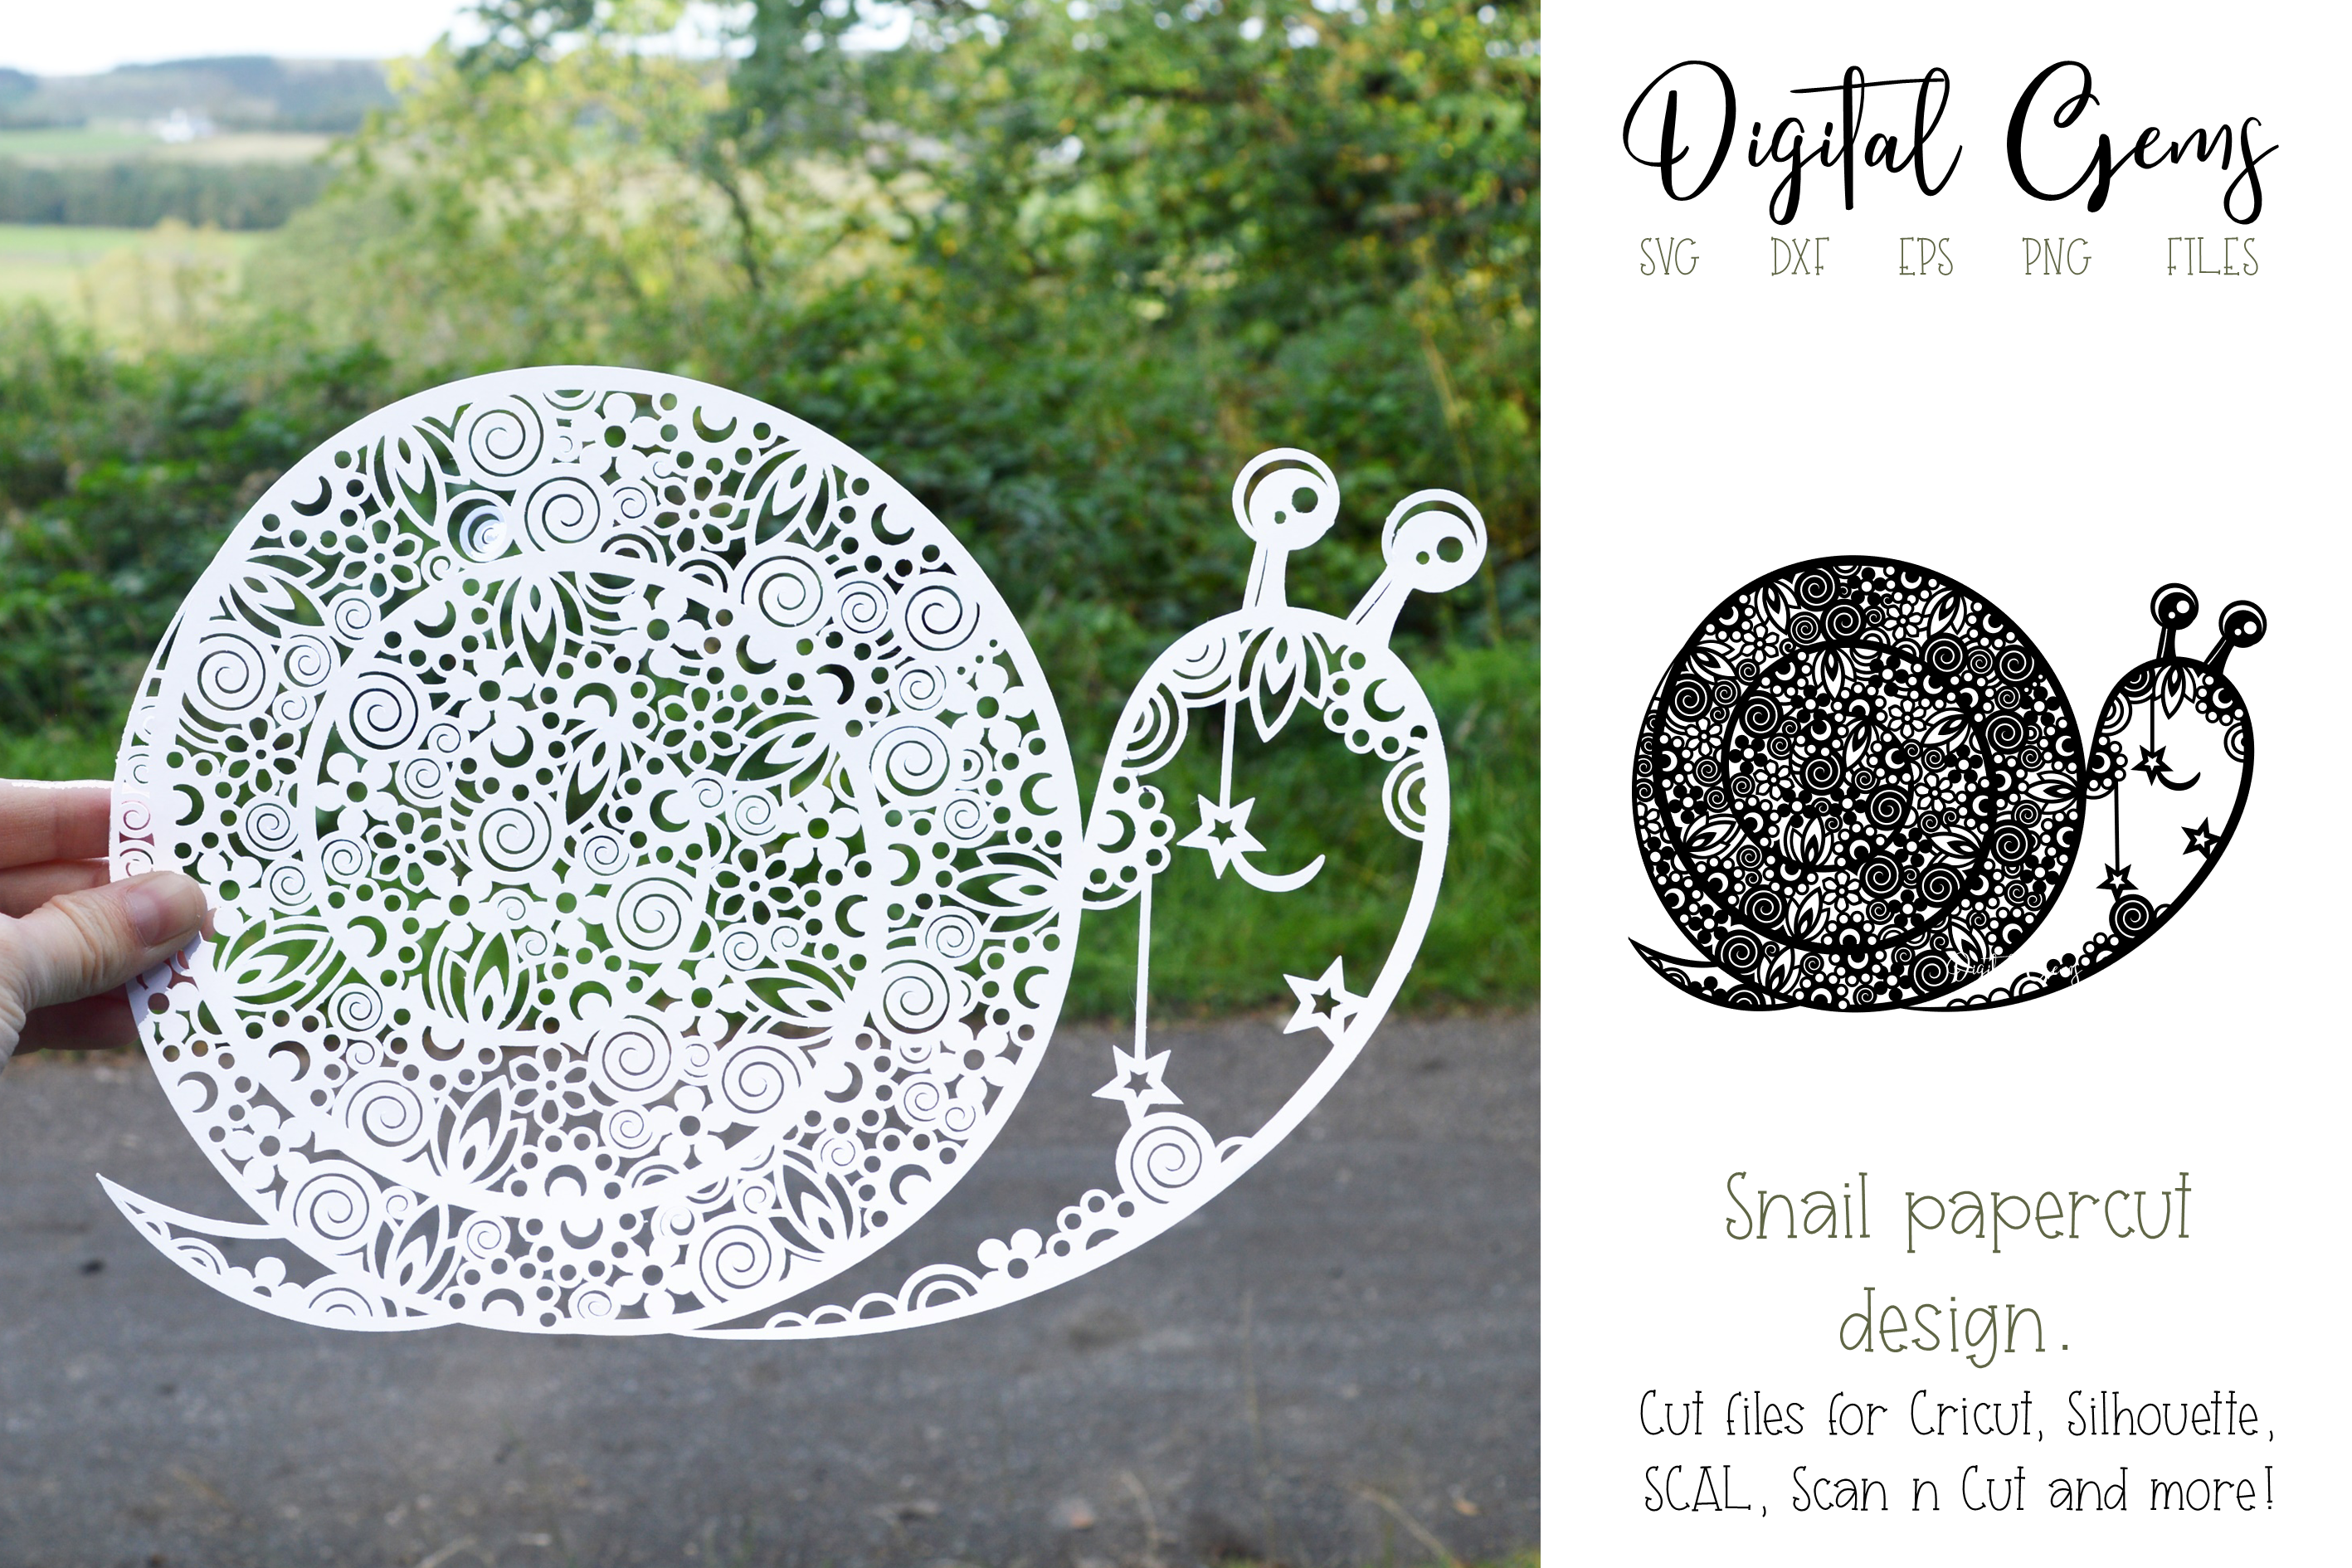 Snail paper cut design. SVG / DXF / EPS / PNG files example image 1